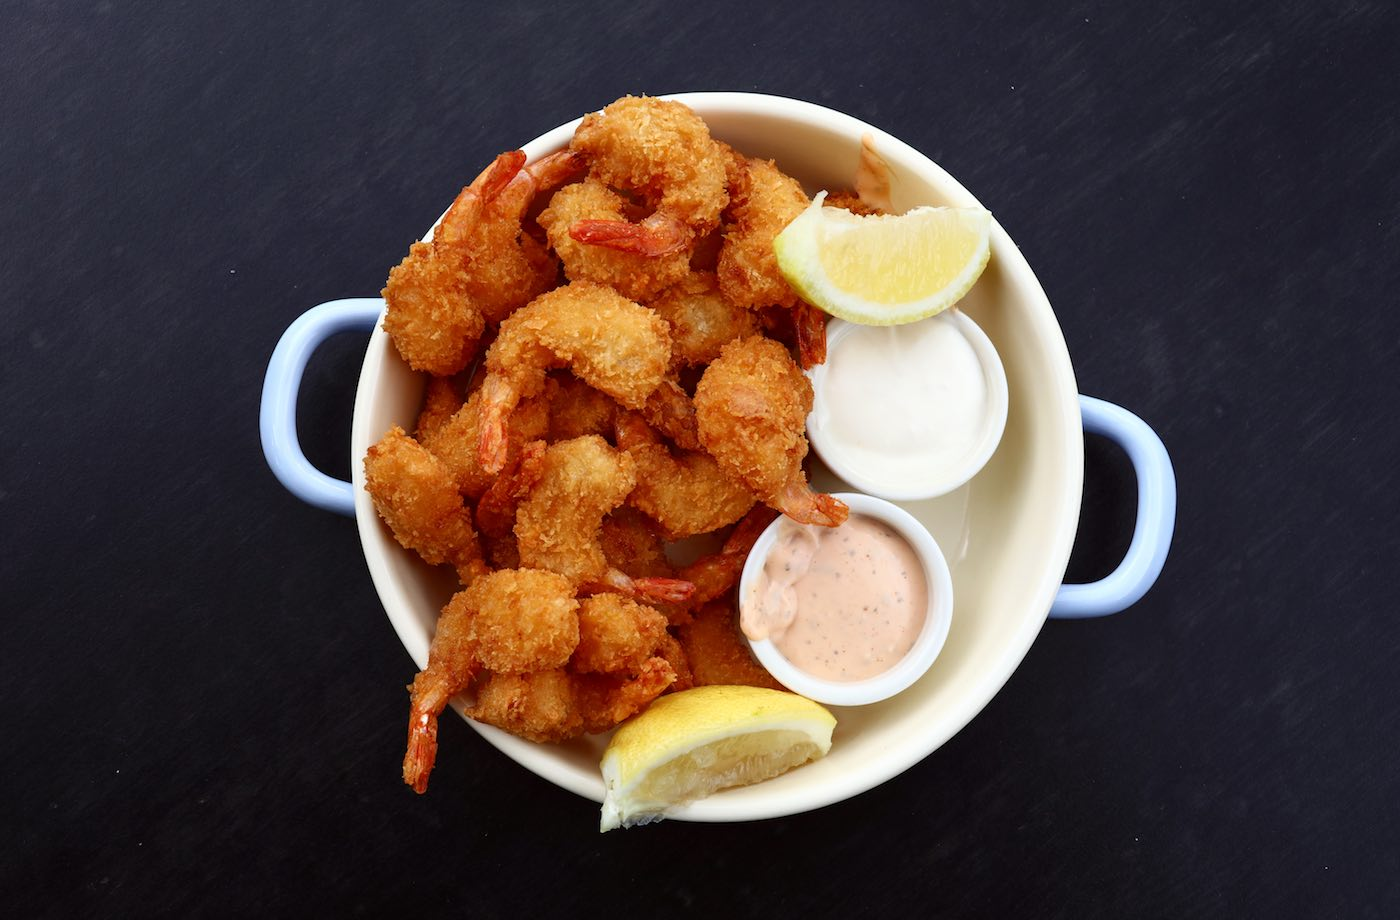 Thumbnail for 4 ingredients, 3 words, 1 magical meal: healthy popcorn shrimp